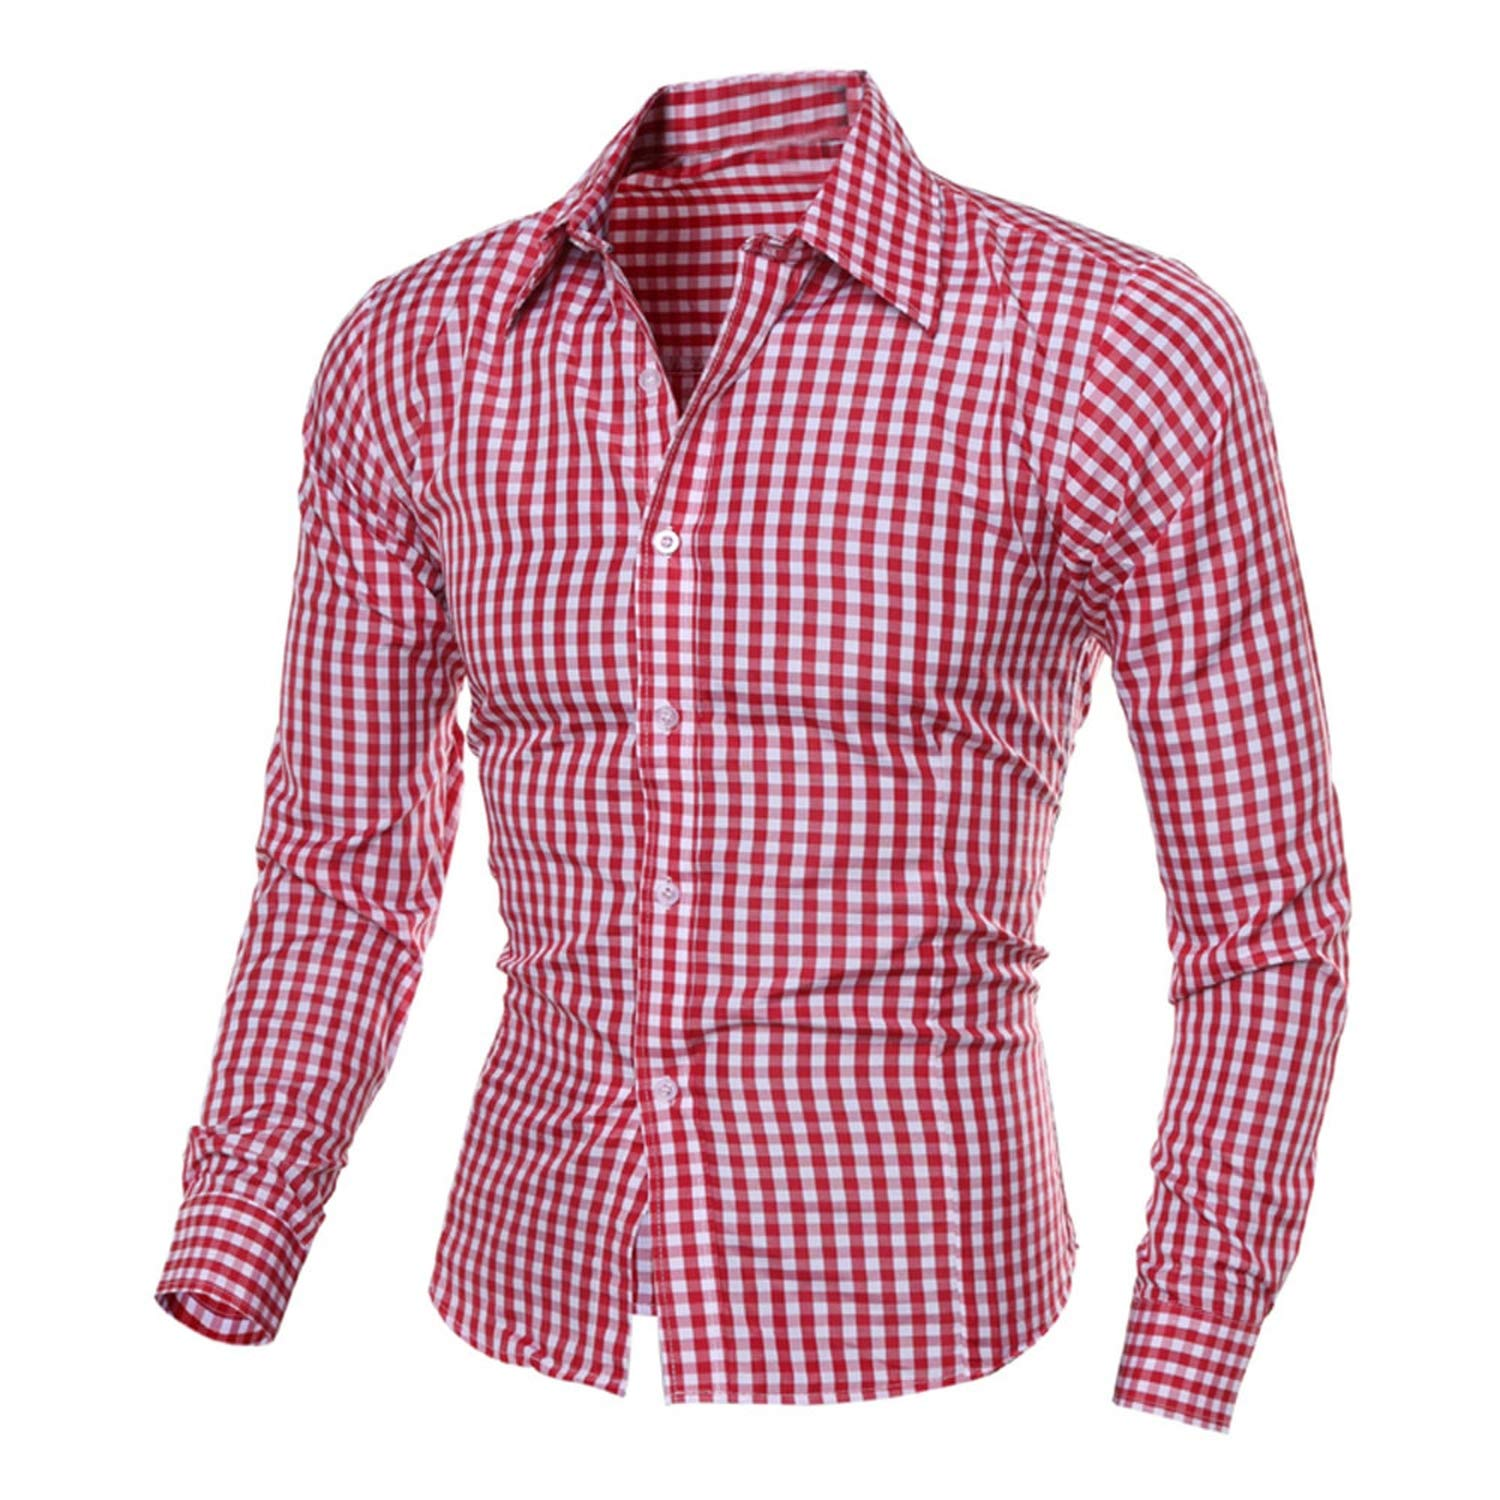 Men Shirts Long Sleeve Cotton Business Casual Shirt #W35,Red,L